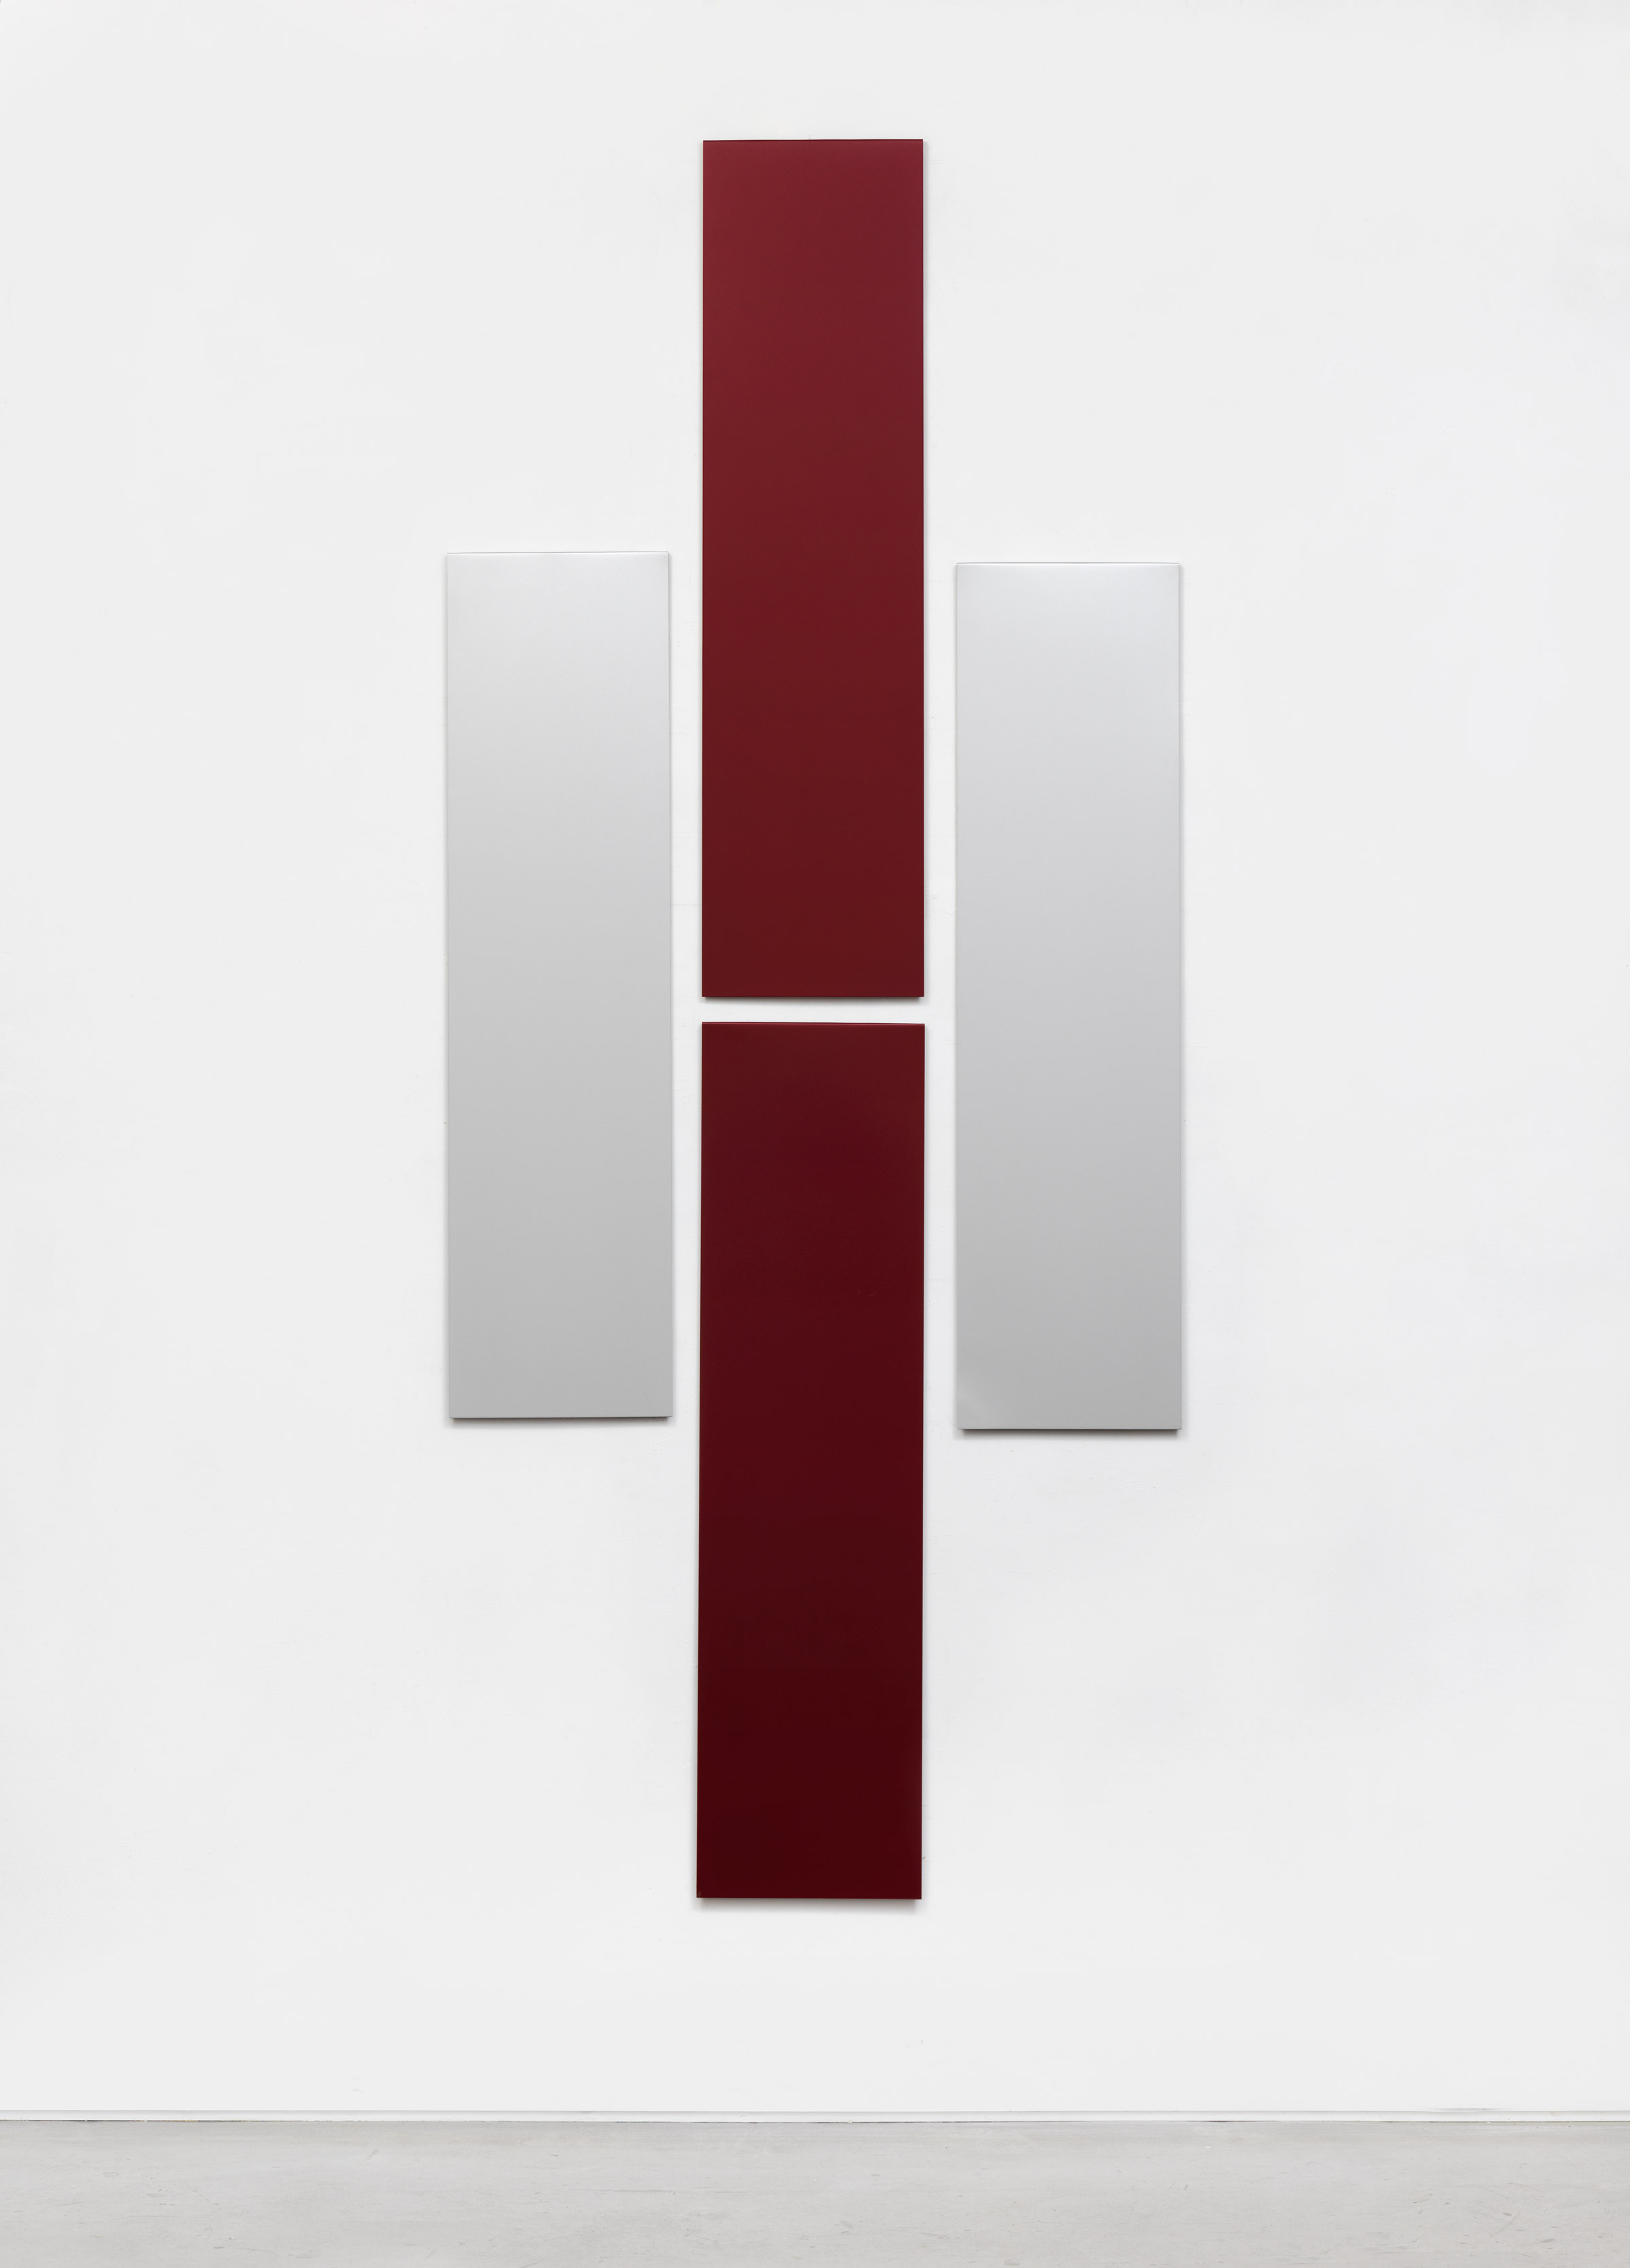 Don Dudley, Untitled (Aluminum Module), 1973-2018, acrylic lacquer on aluminum, each module 46.75h x 12w in; overall 96h x 40w in.